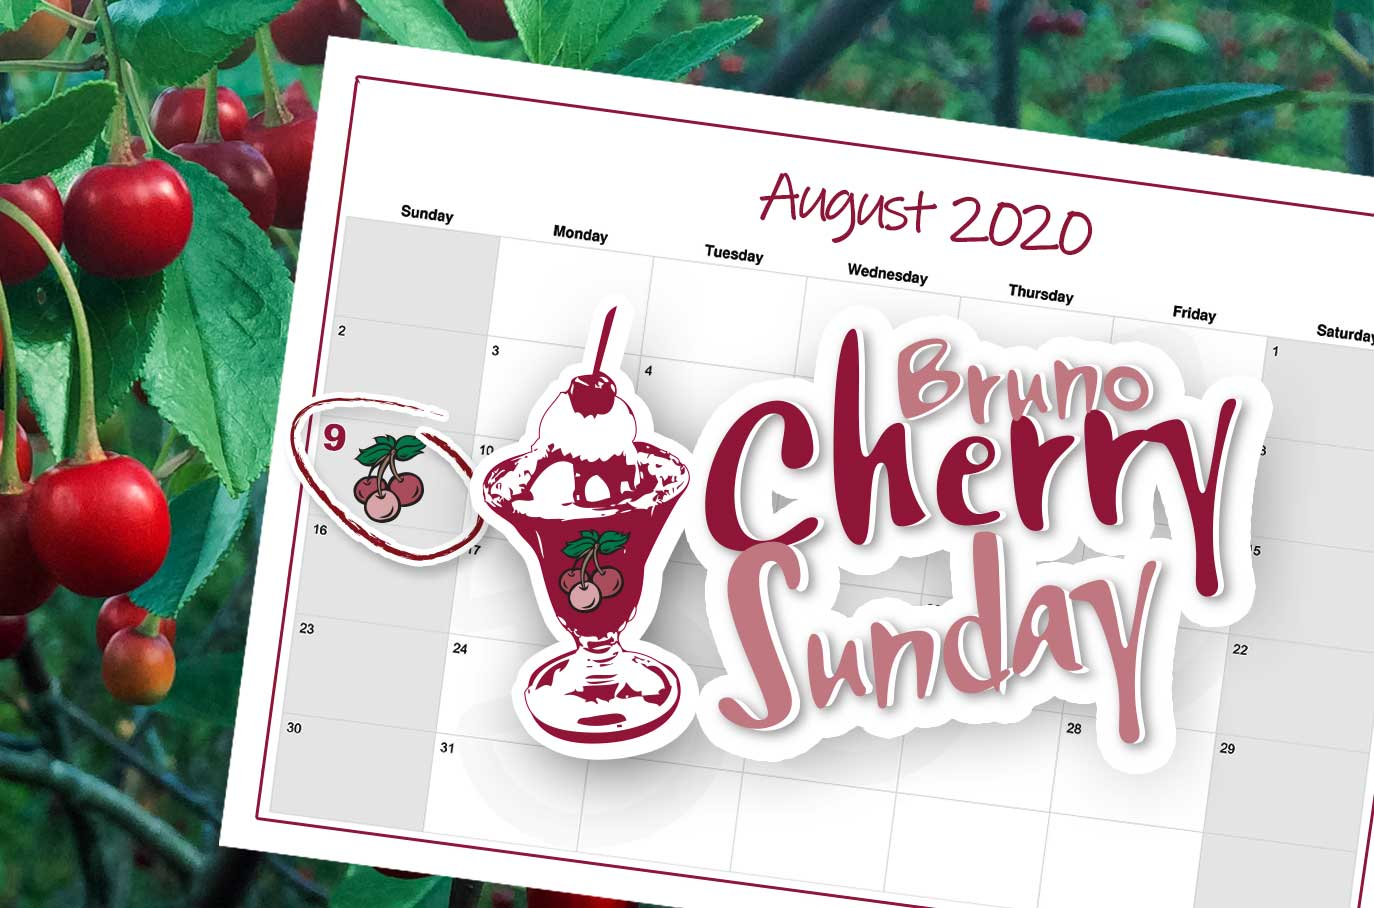 Bruno Cherry Sunday - August 9, 2020